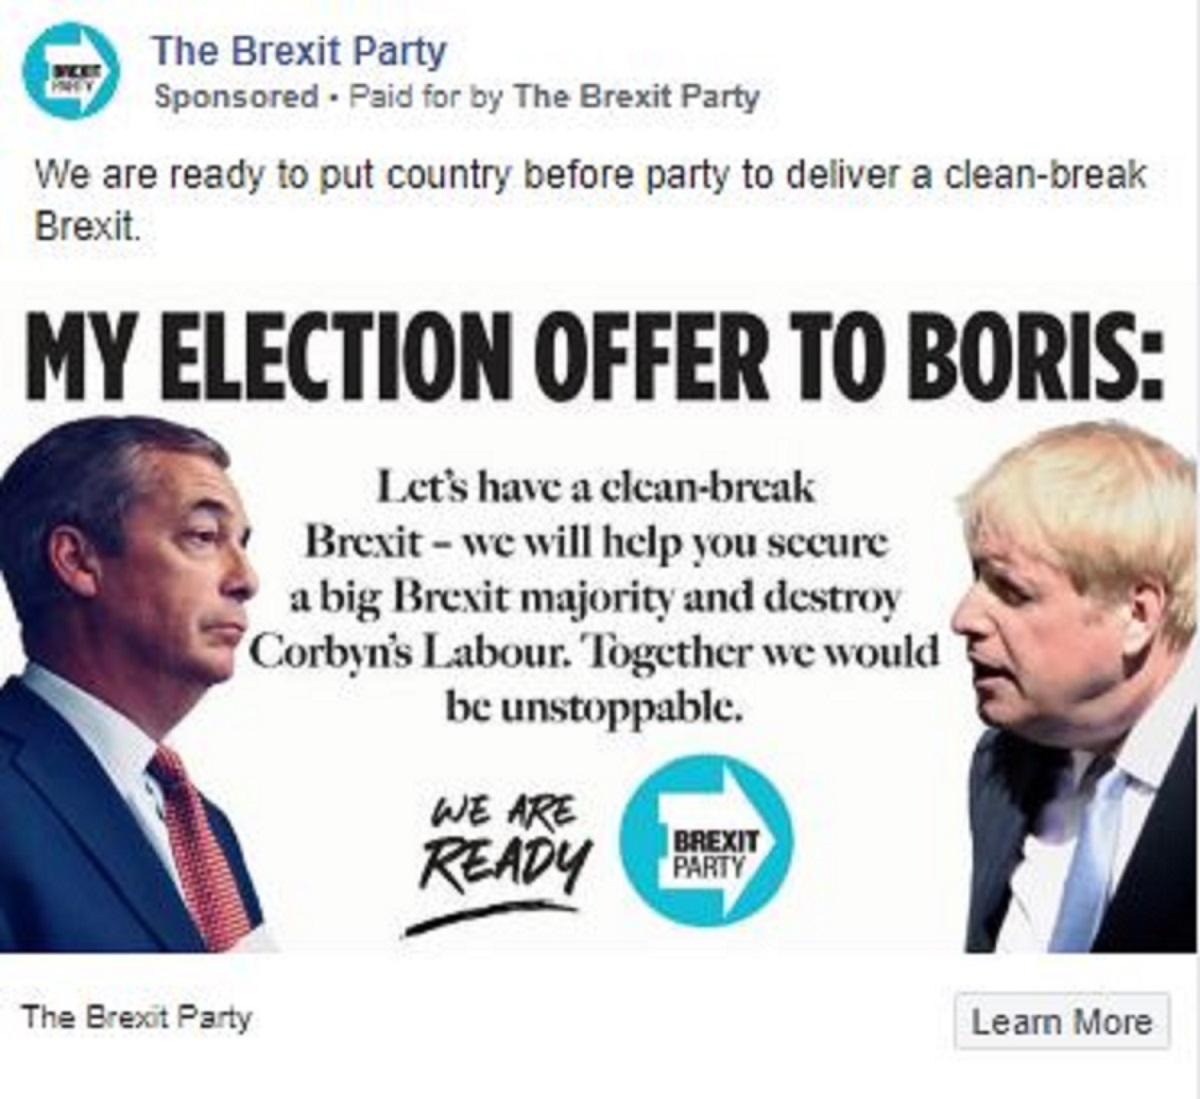 An advert promoted by the Brexit Party